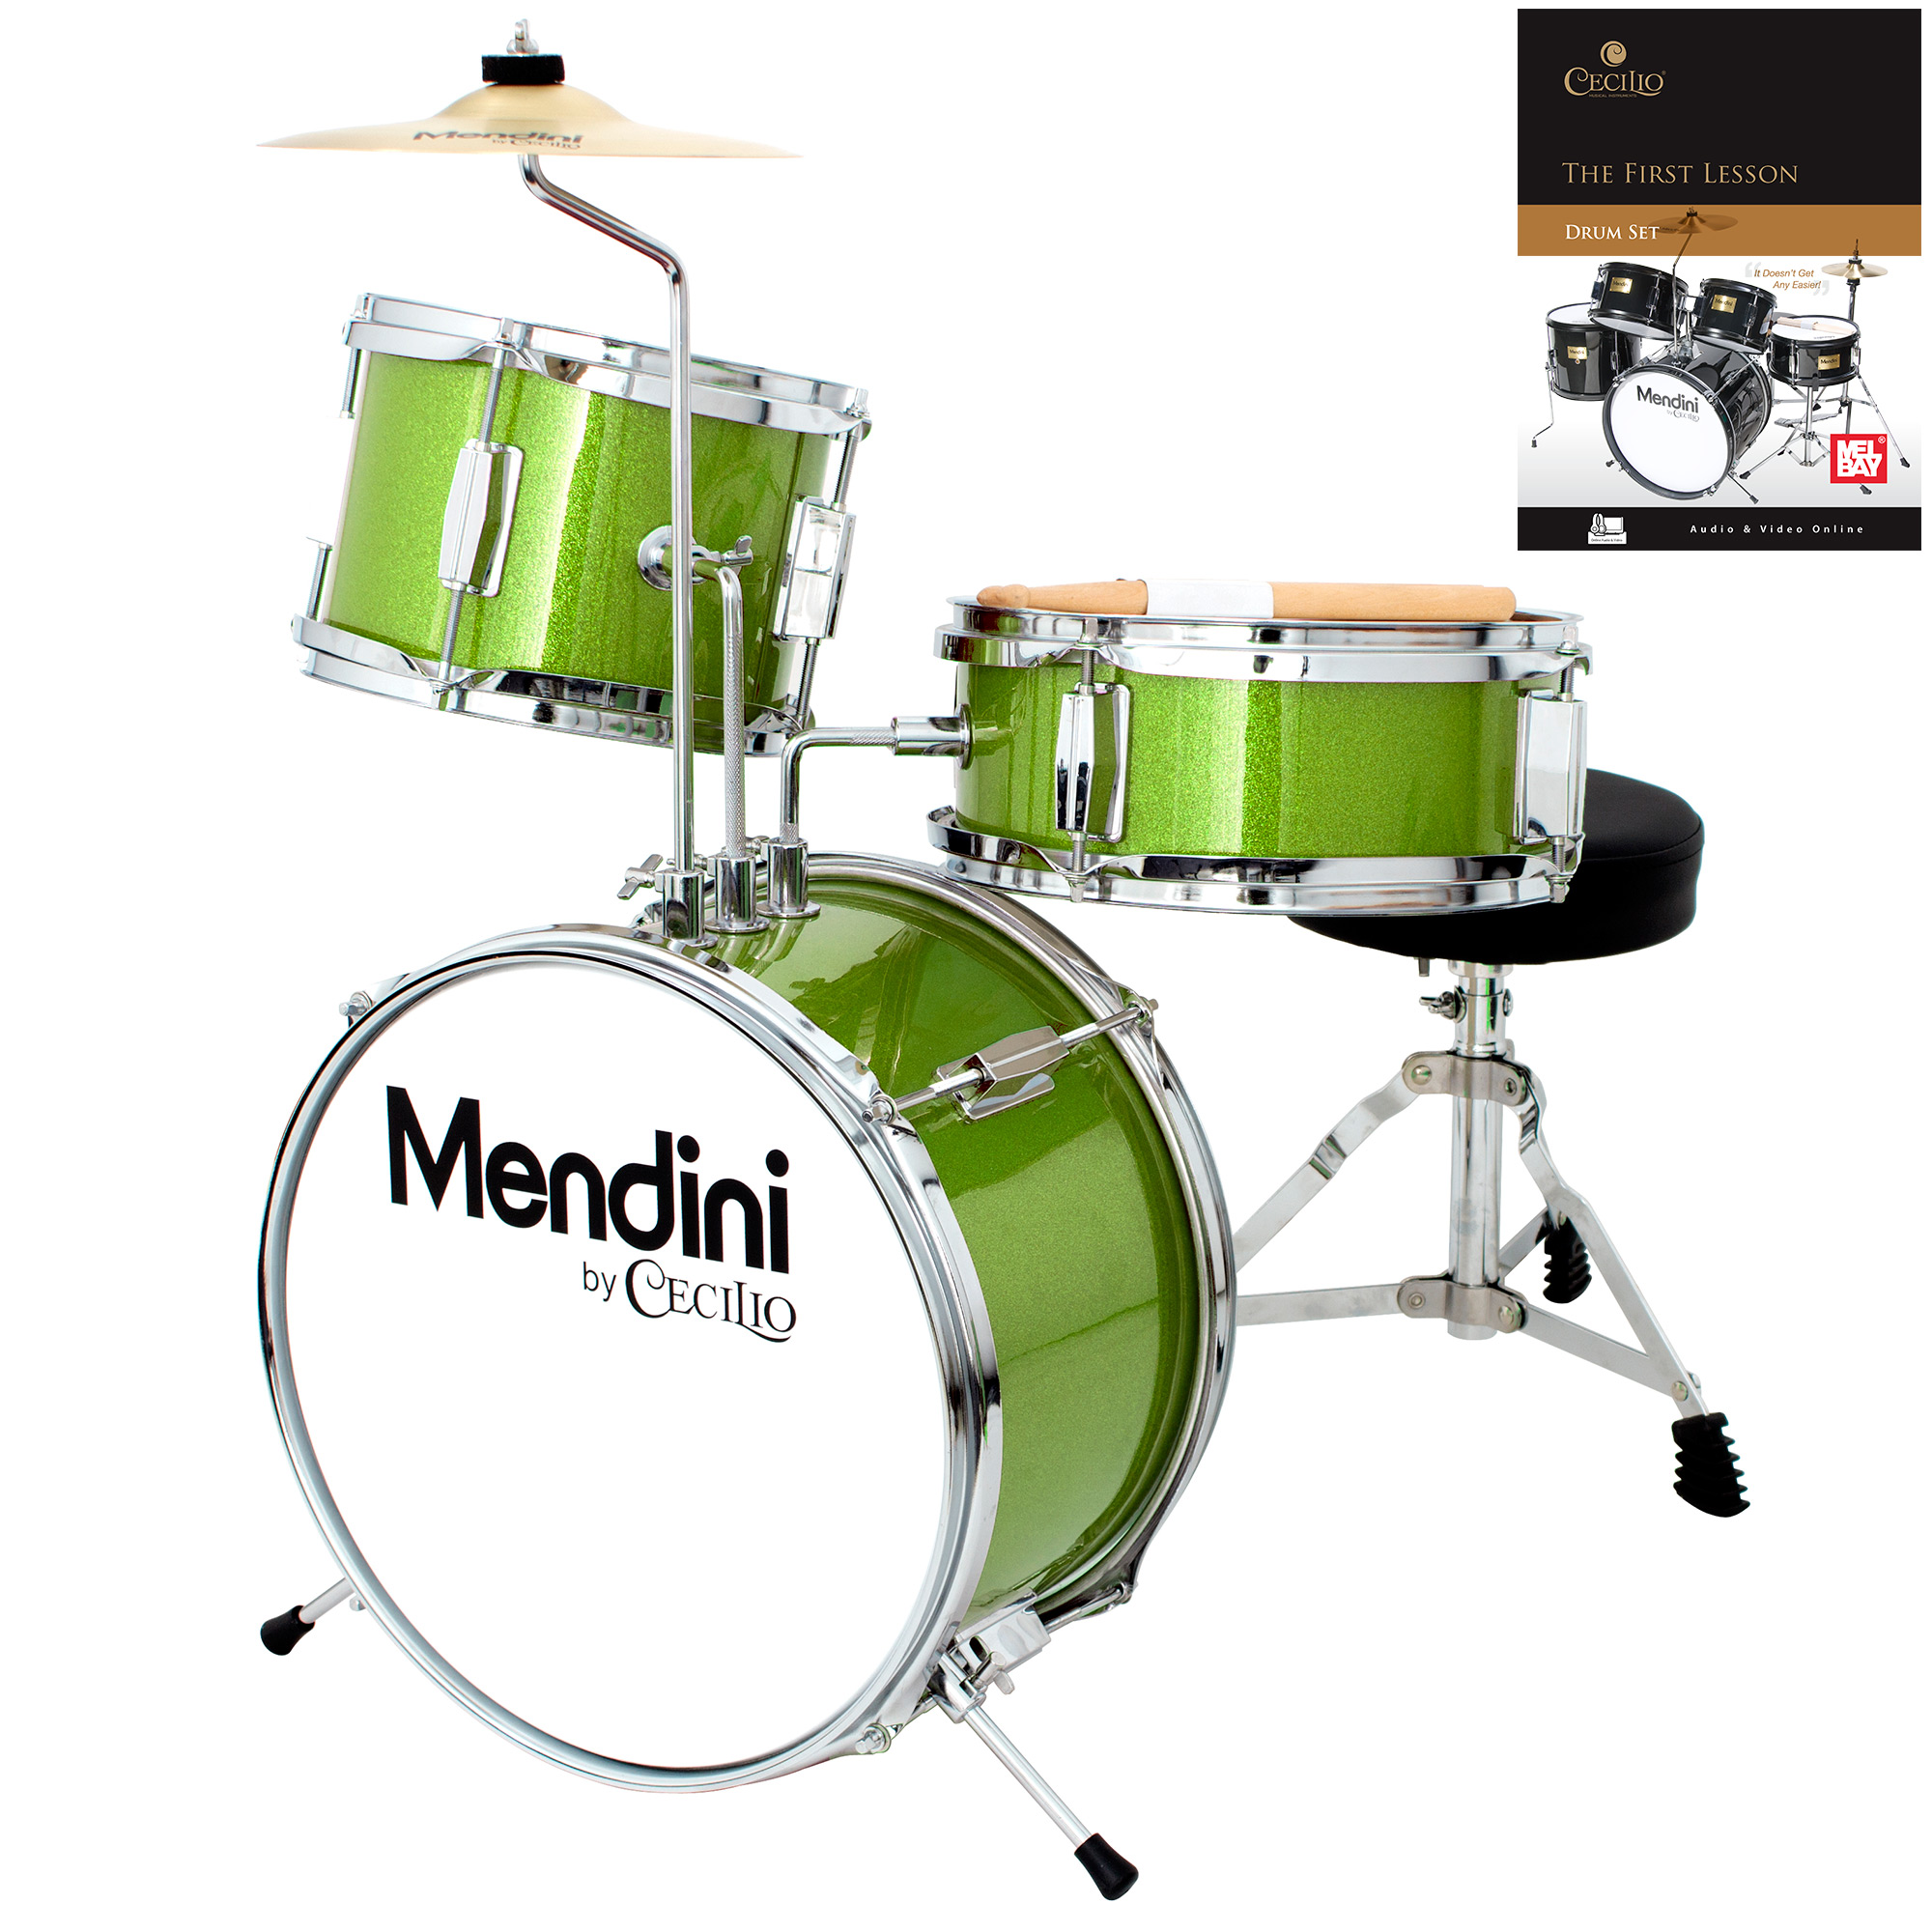 Mendini by Cecilio 13 Inch 3-Piece Kids / Junior Drum Set with Adjustable Throne, Cymbal, Pedal, Drumsticks & Lesson Book, Metallic Green, MJDS-1-GN